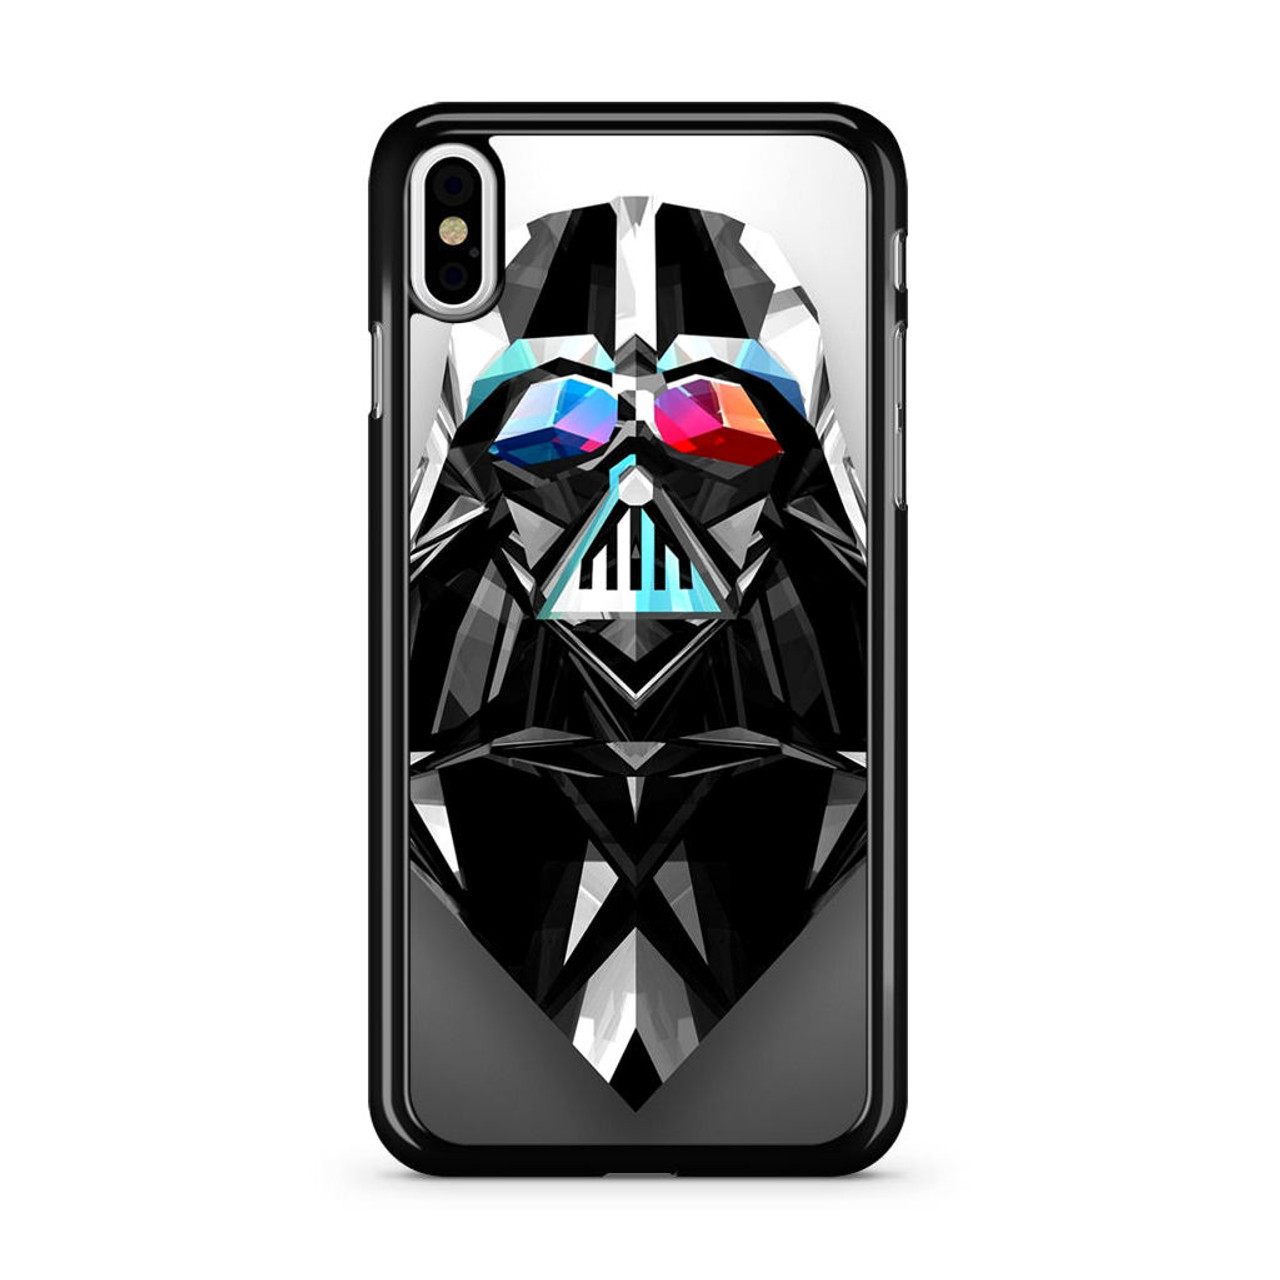 8ef925ec39a72 Movie Starwars Darth Vader Artistic Geometric iPhone Xs Case